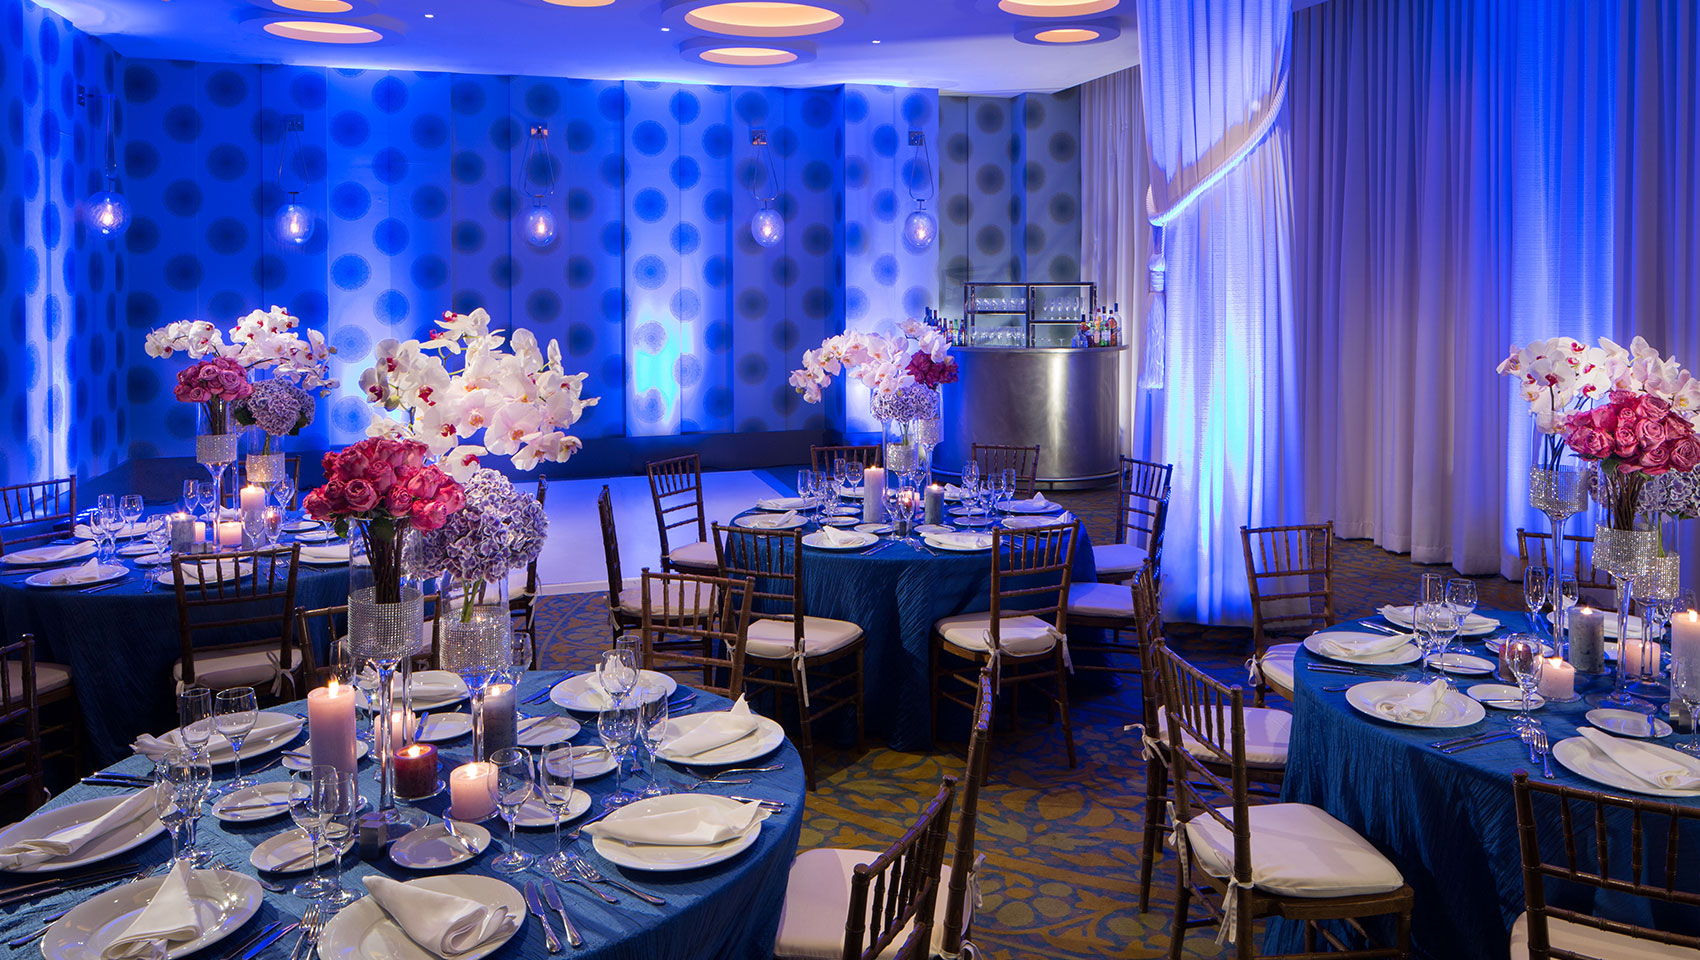 Venue space set up for event with round tables, tall floral arrangements, and dance floor